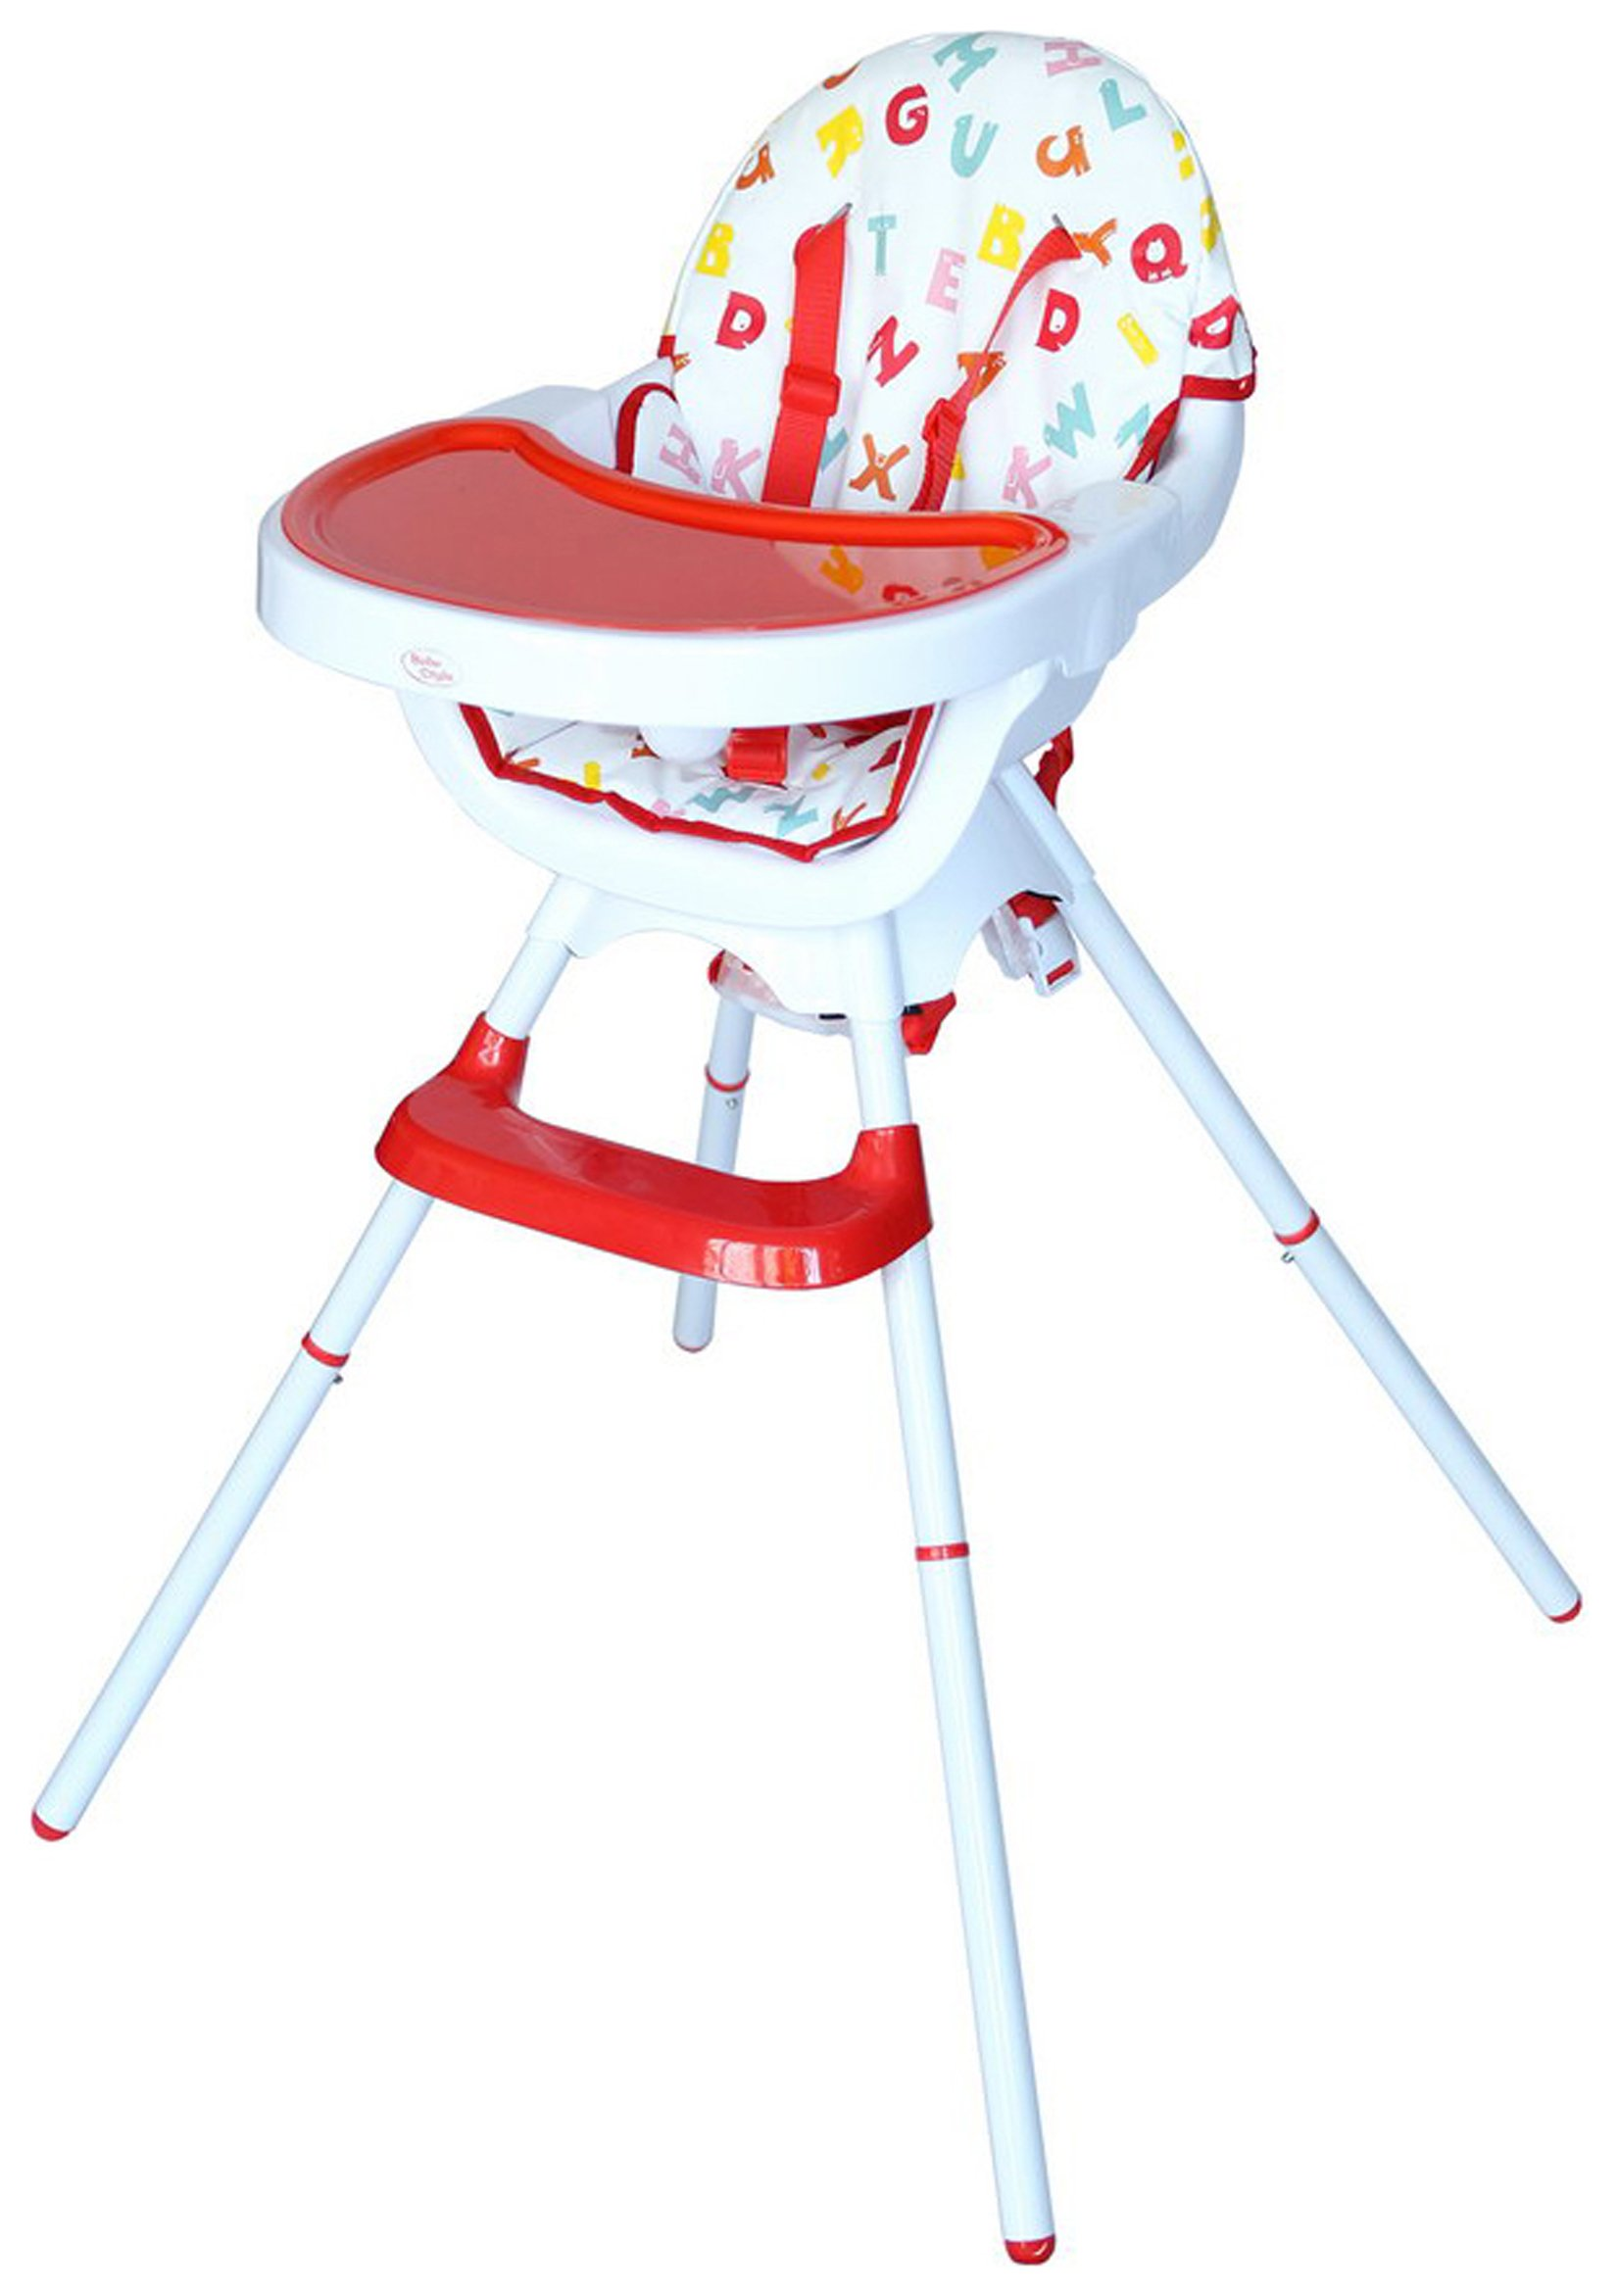 Image of Bebe Style 3 in 1 Highchair - Red.